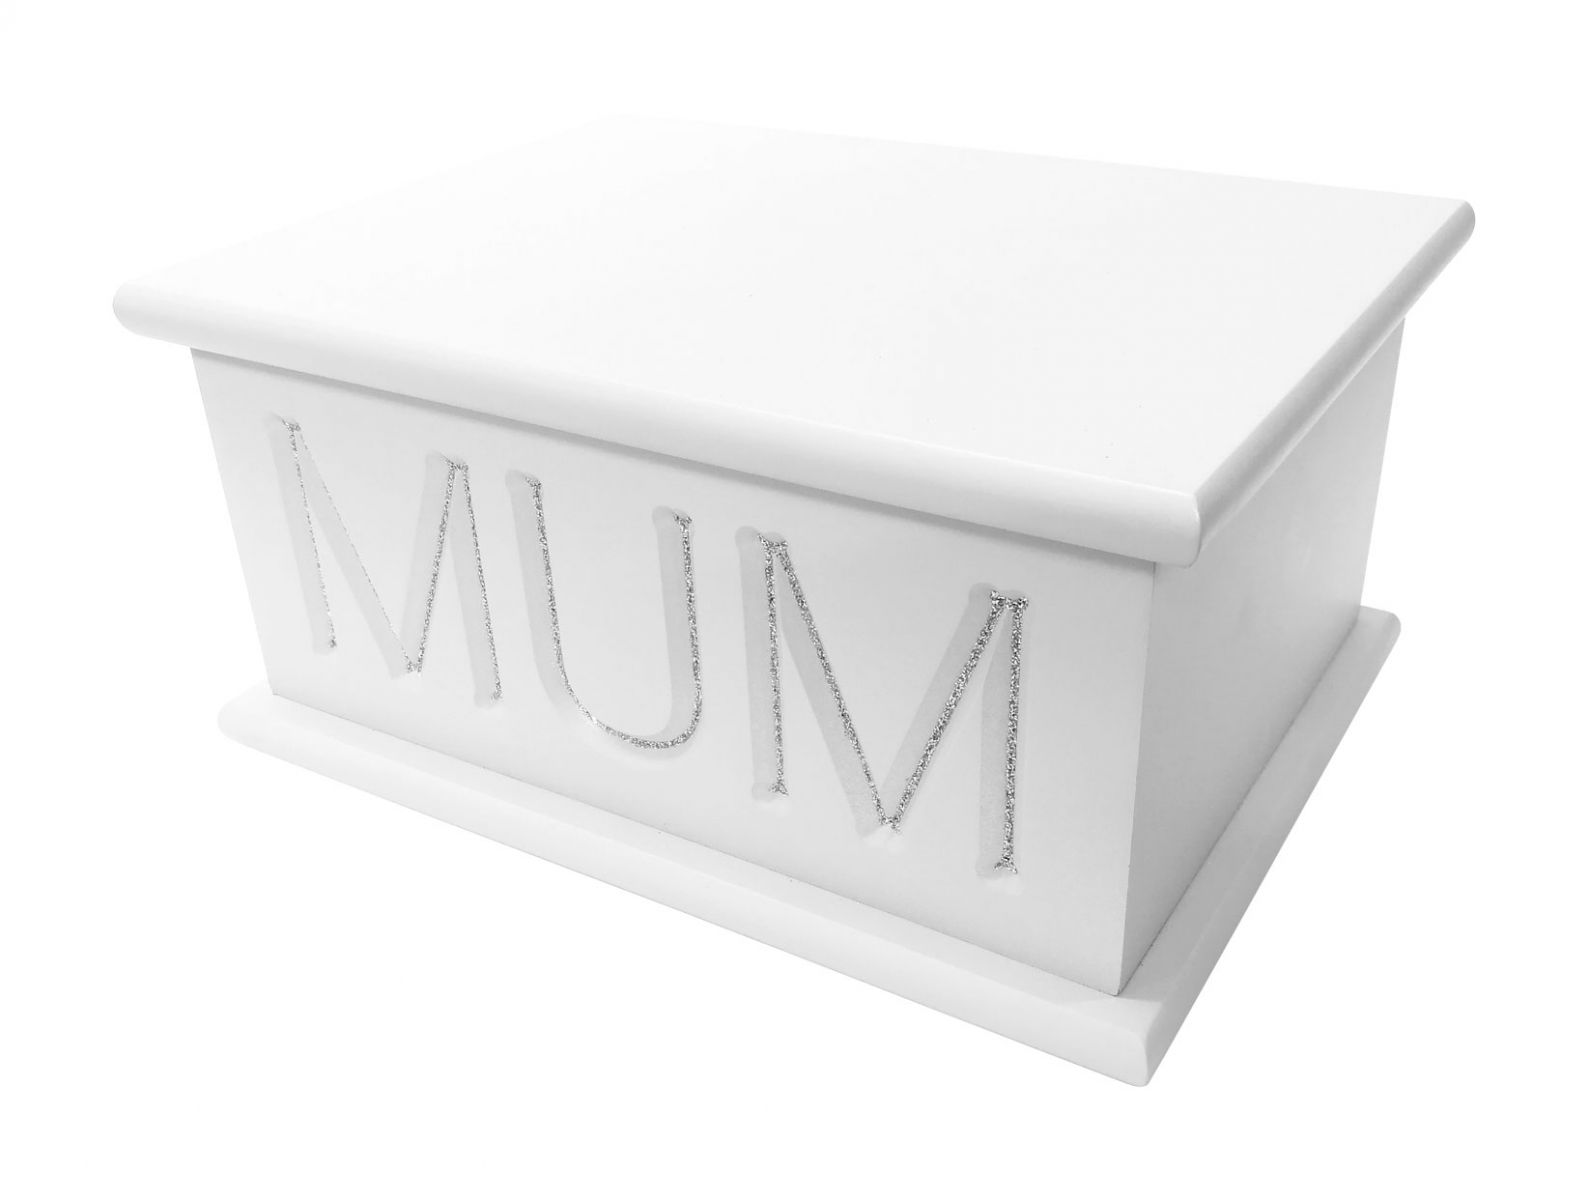 Carved ashes casket in white